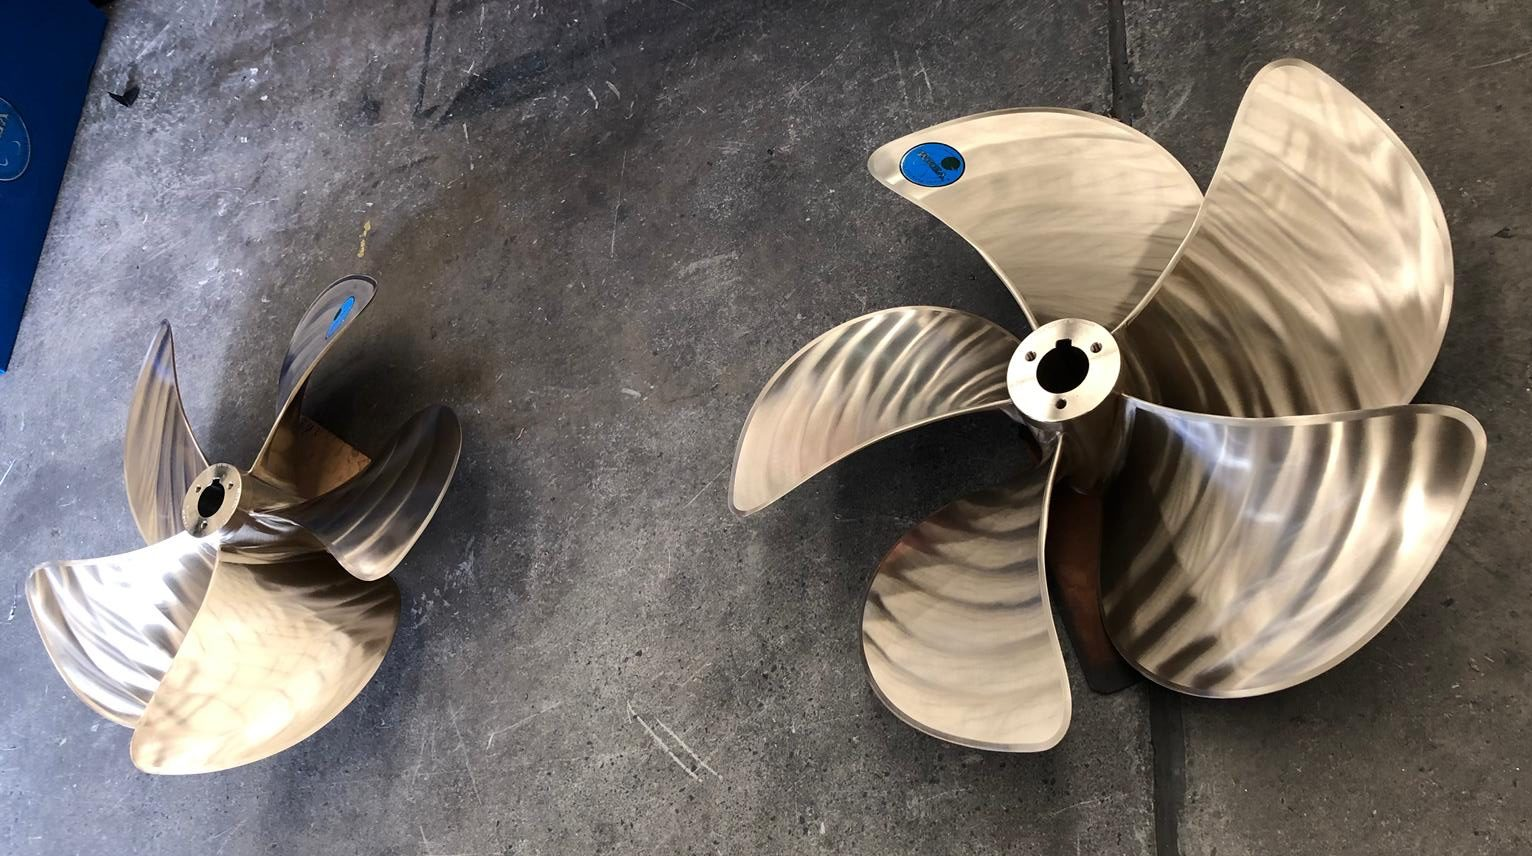 2 Marine Propellers destined to be a Boardroom table base